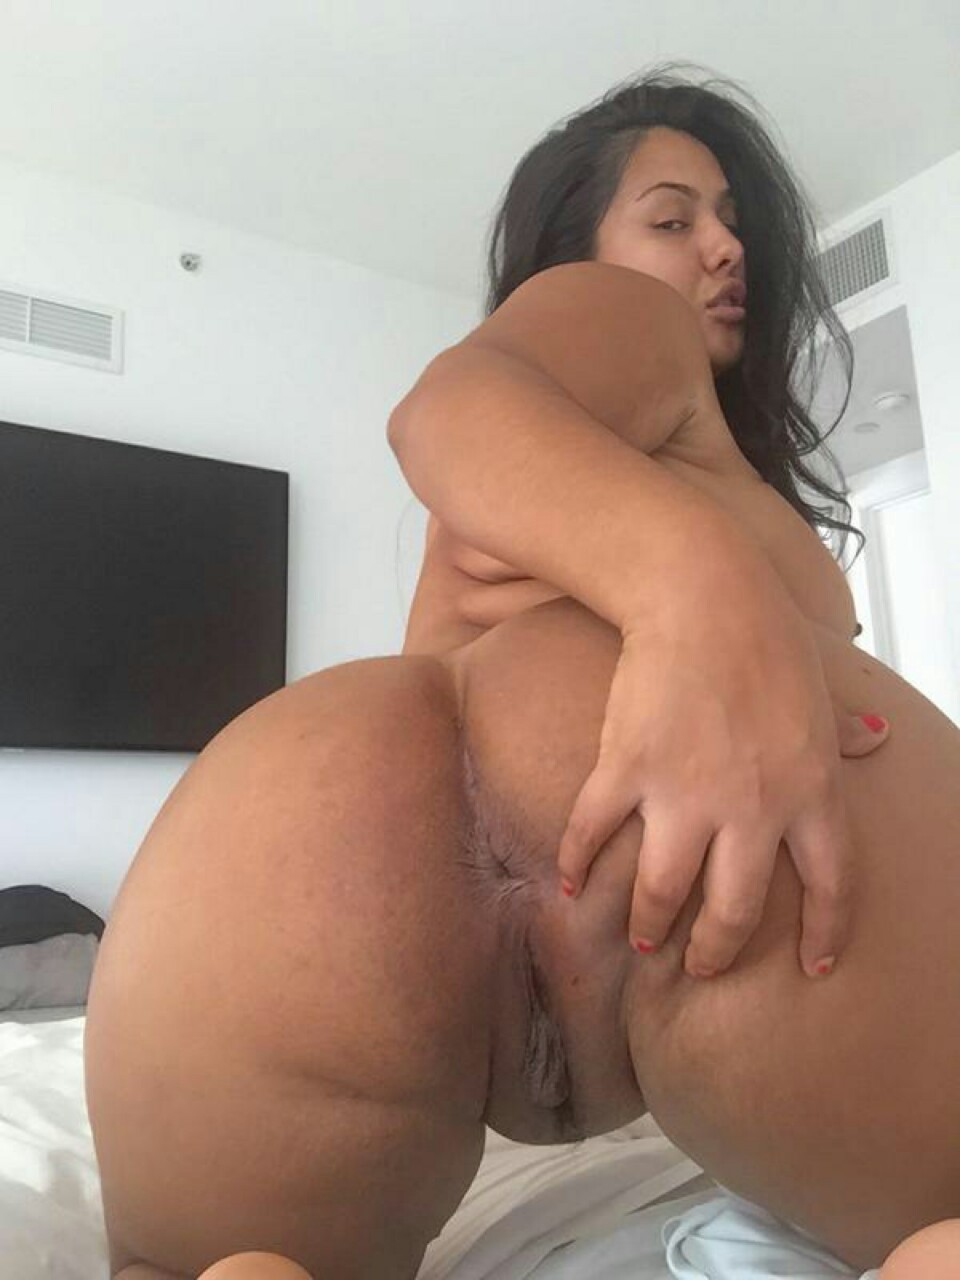 grote Booty Latinas pussy Indiase porno pic